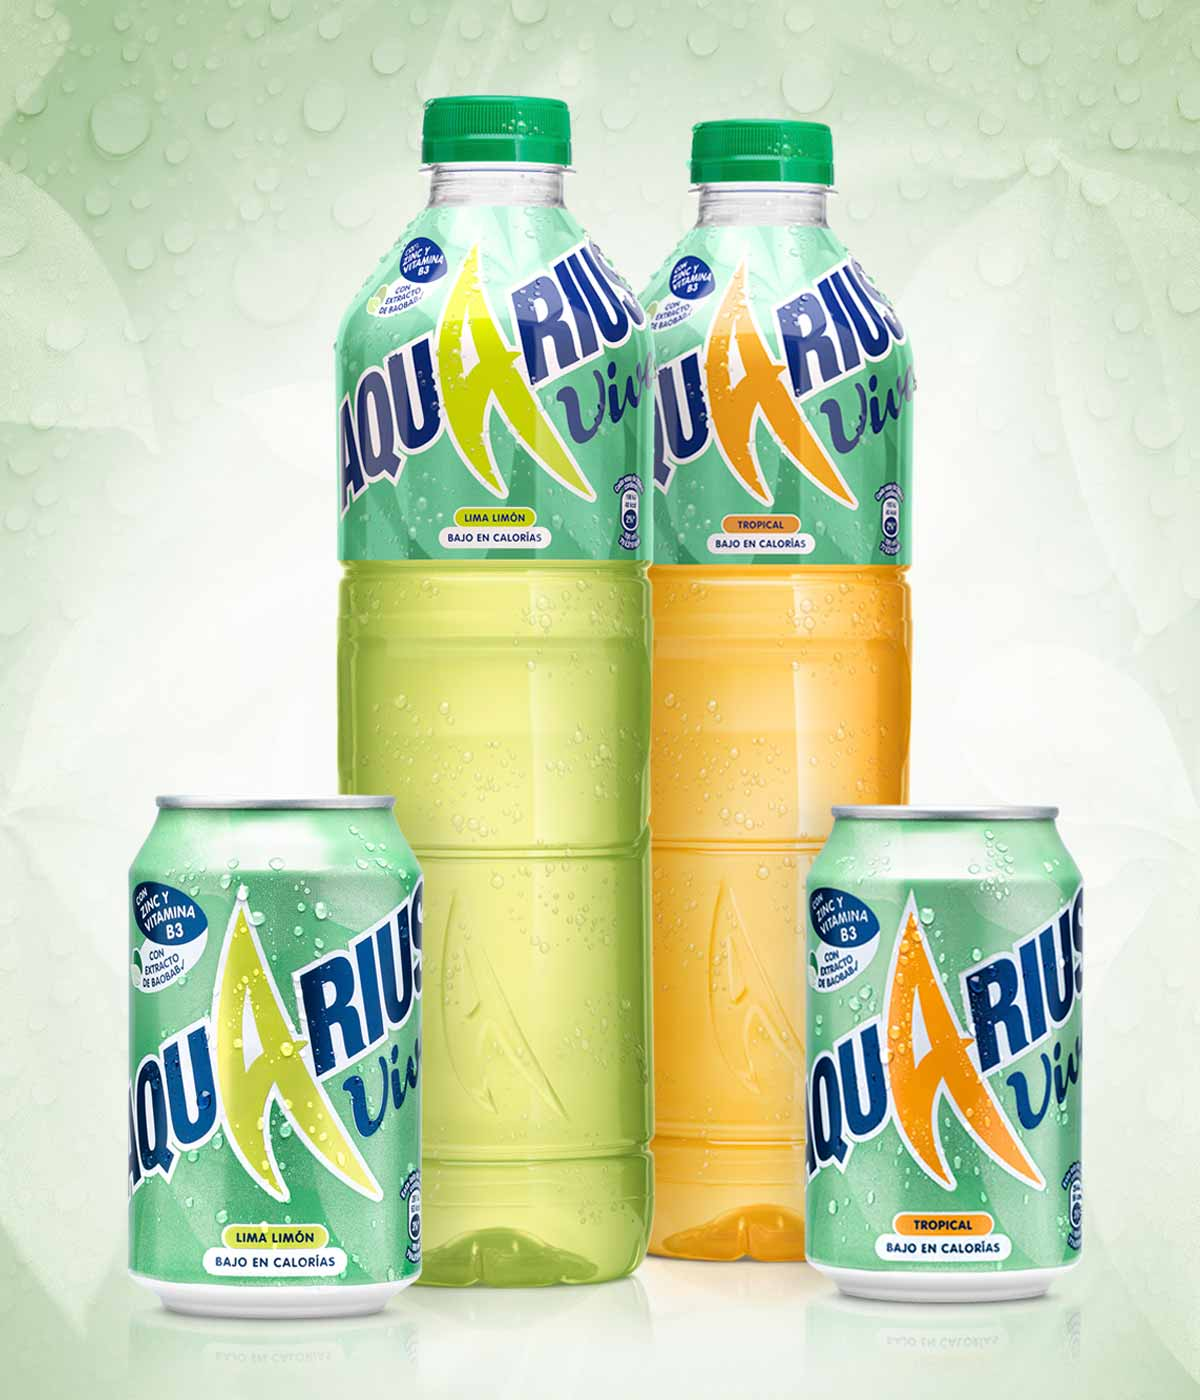 This image featured two large bottles of Aquarius Vive and two 330ml cans of Aquarius Vive. There are Tropical and Lemon & Lime variants in the image. P&W produced the packaging design for the range.